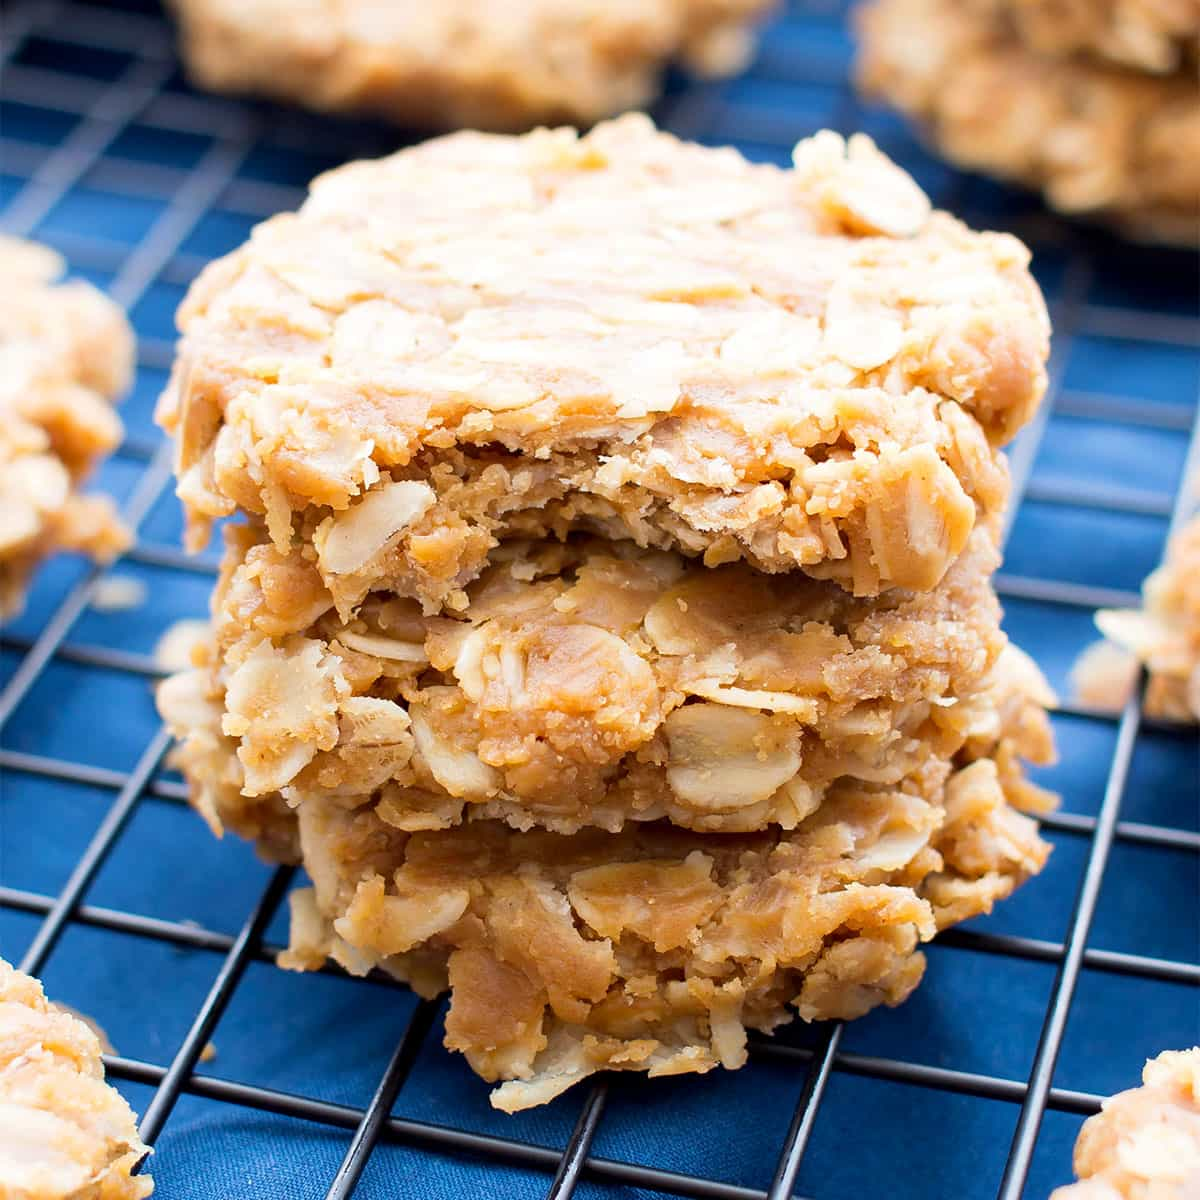 3 Ingredient No Bake Peanut Butter Oatmeal Cookies (gluten